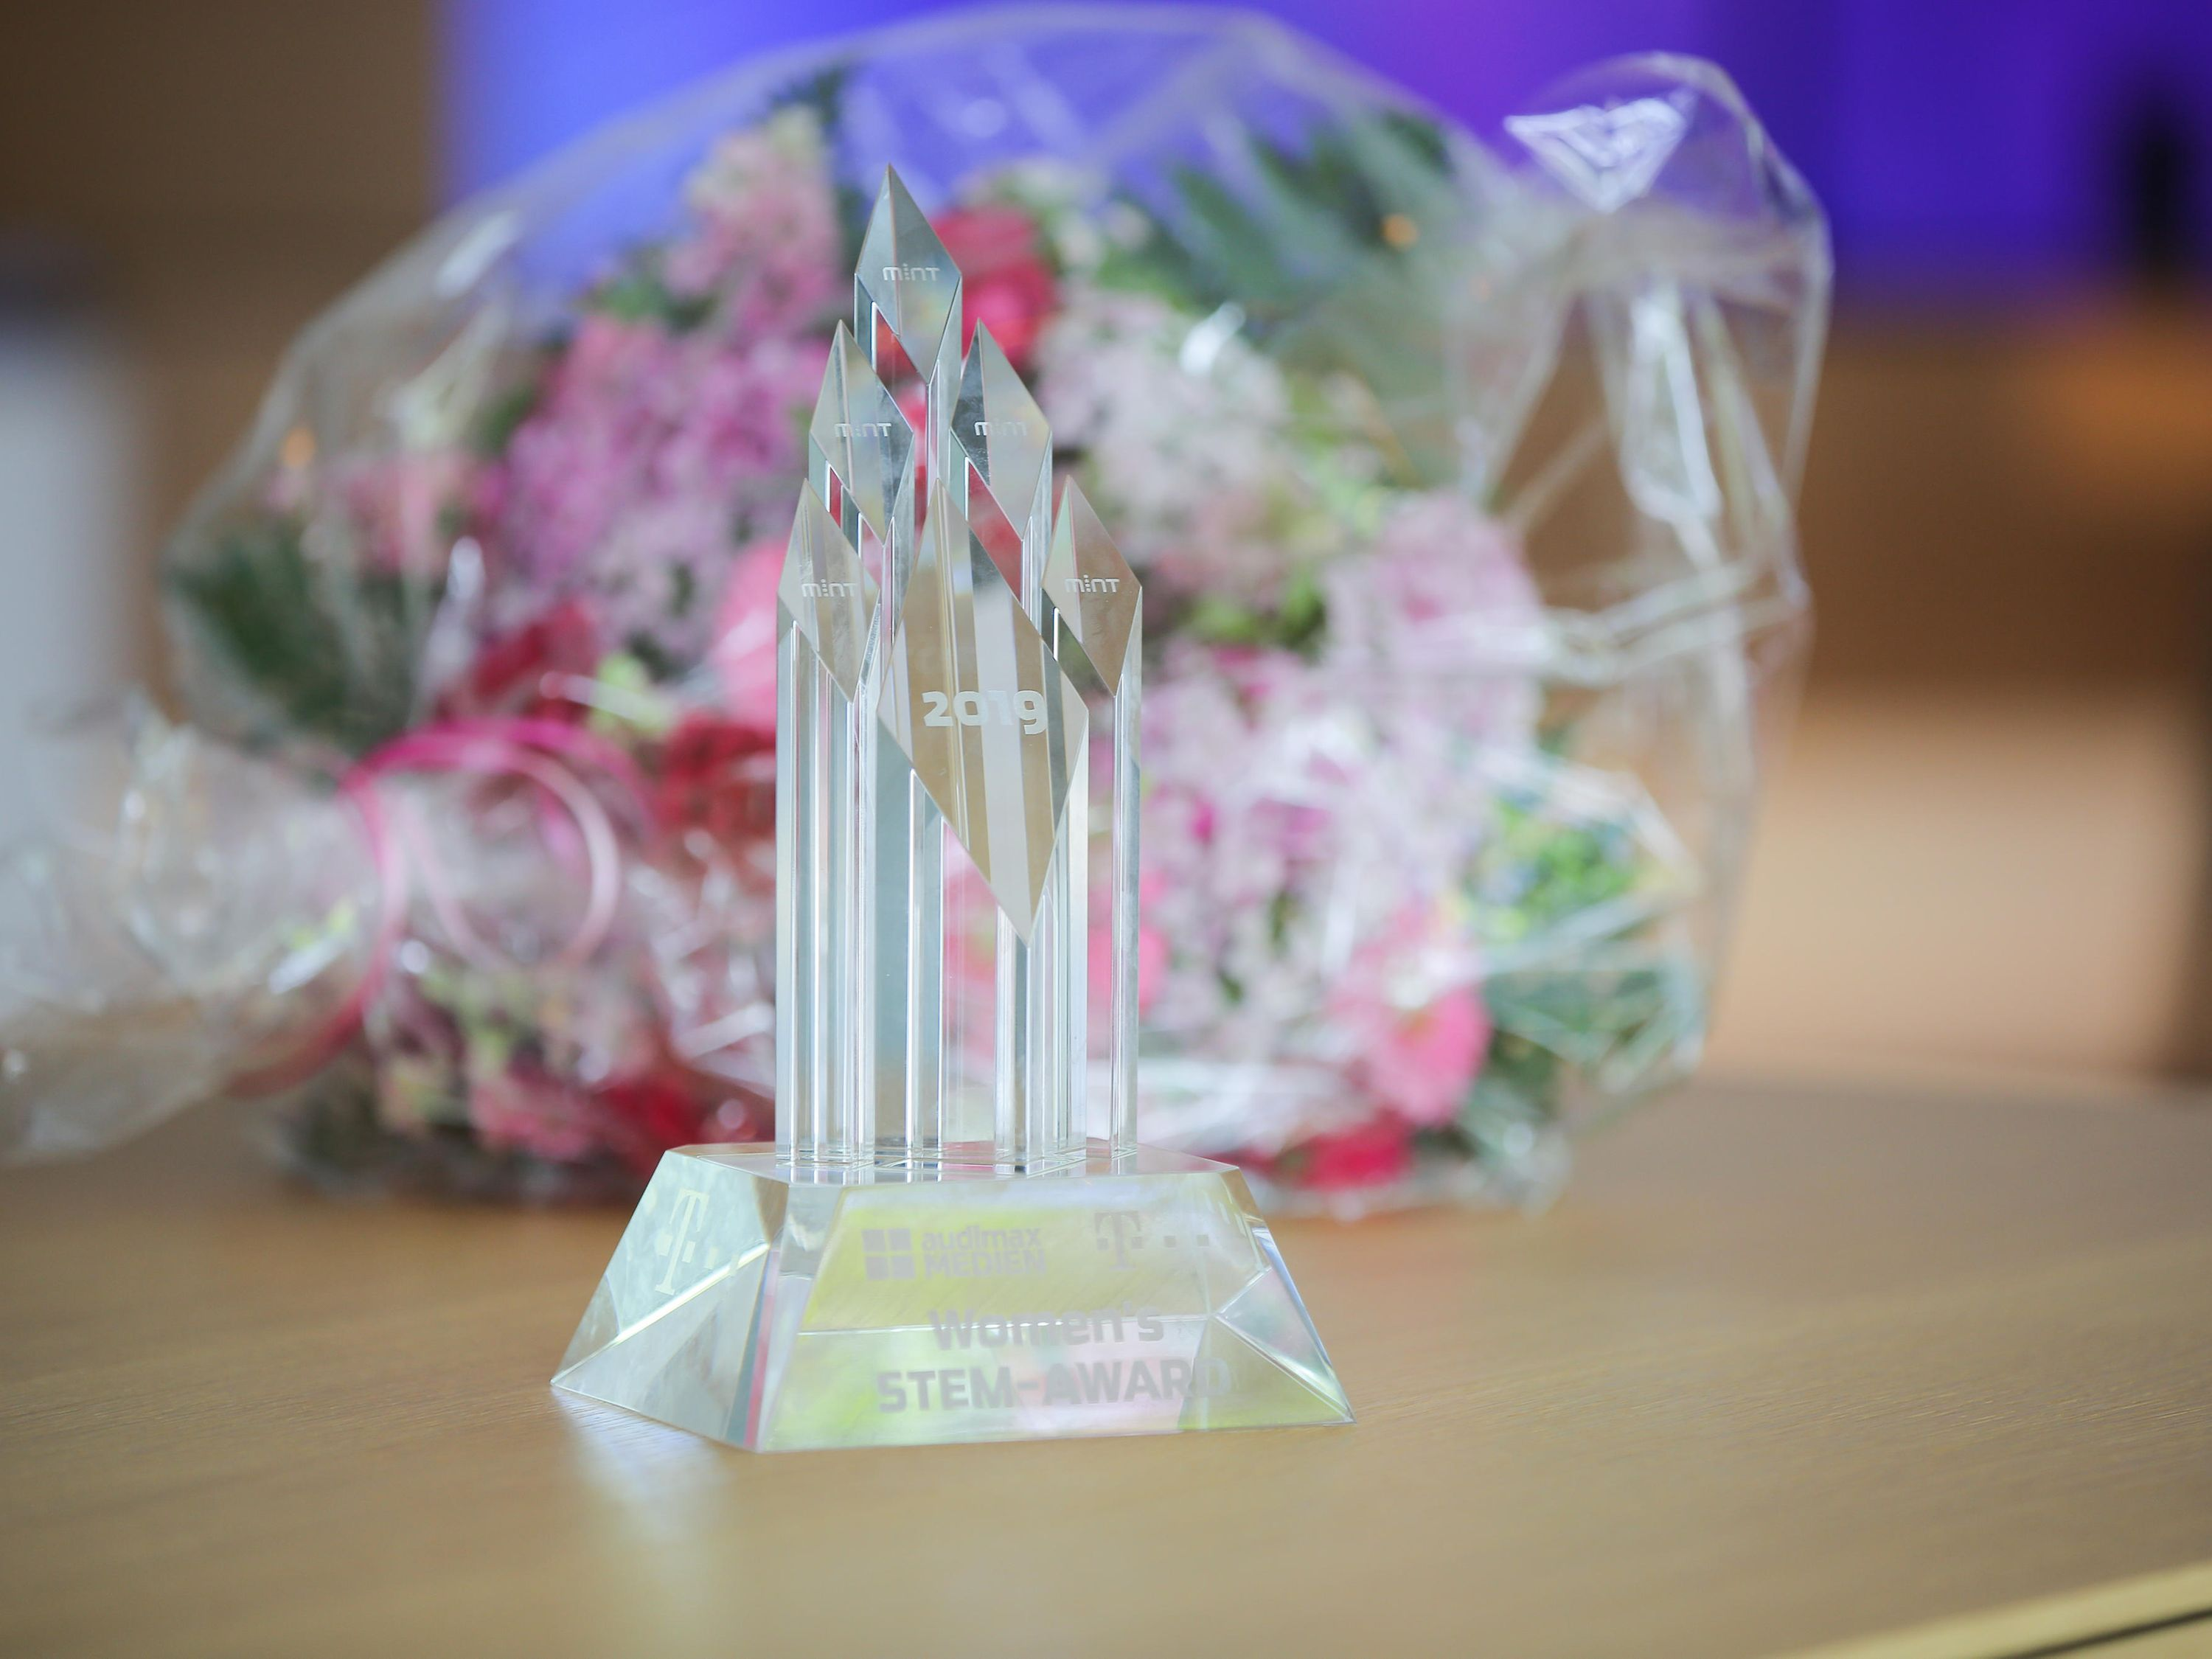 A coveted prize and only for women: A glass trophy and 3,000 euros for the best STEM thesis.